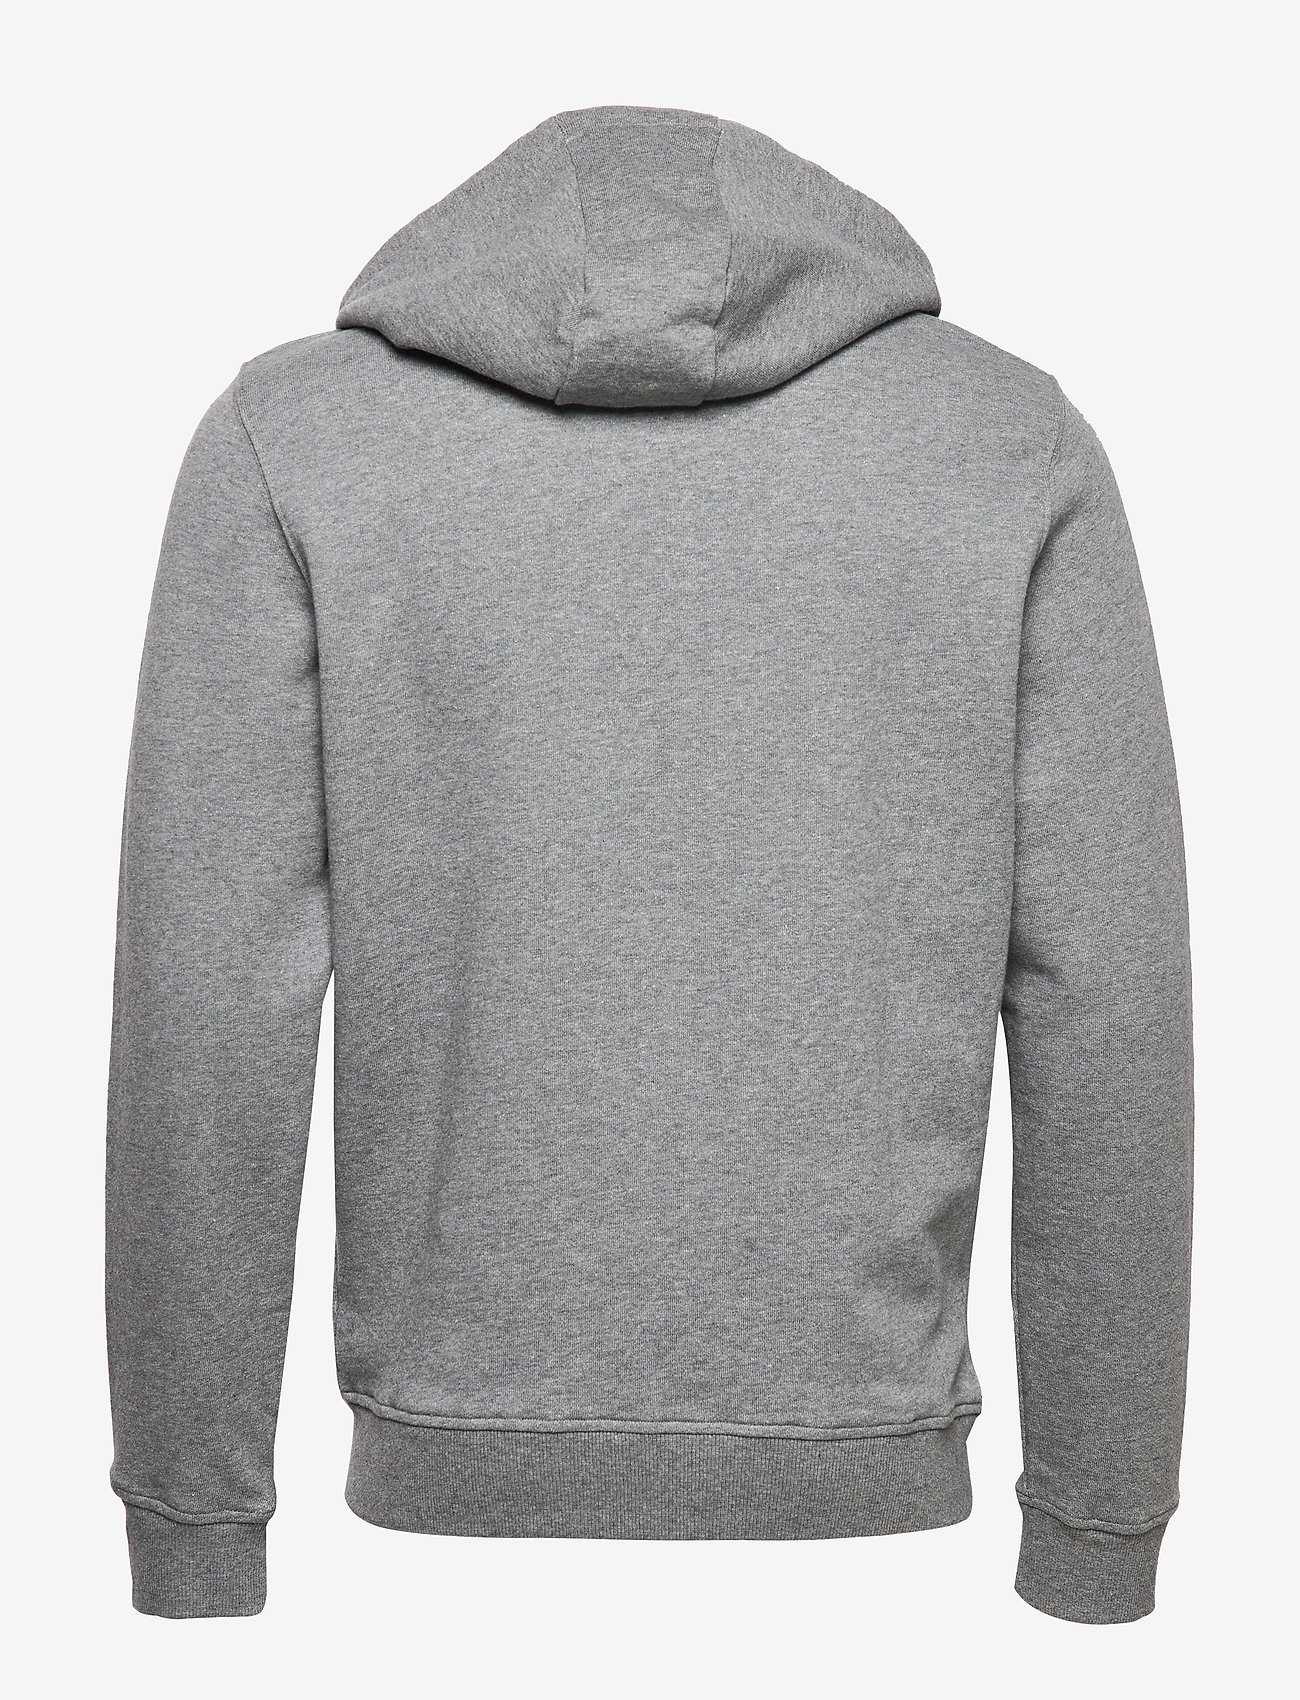 Lyle & Scott Zip Through Hoodie - Sweatshirts MID GREY MARL - Menn Klær